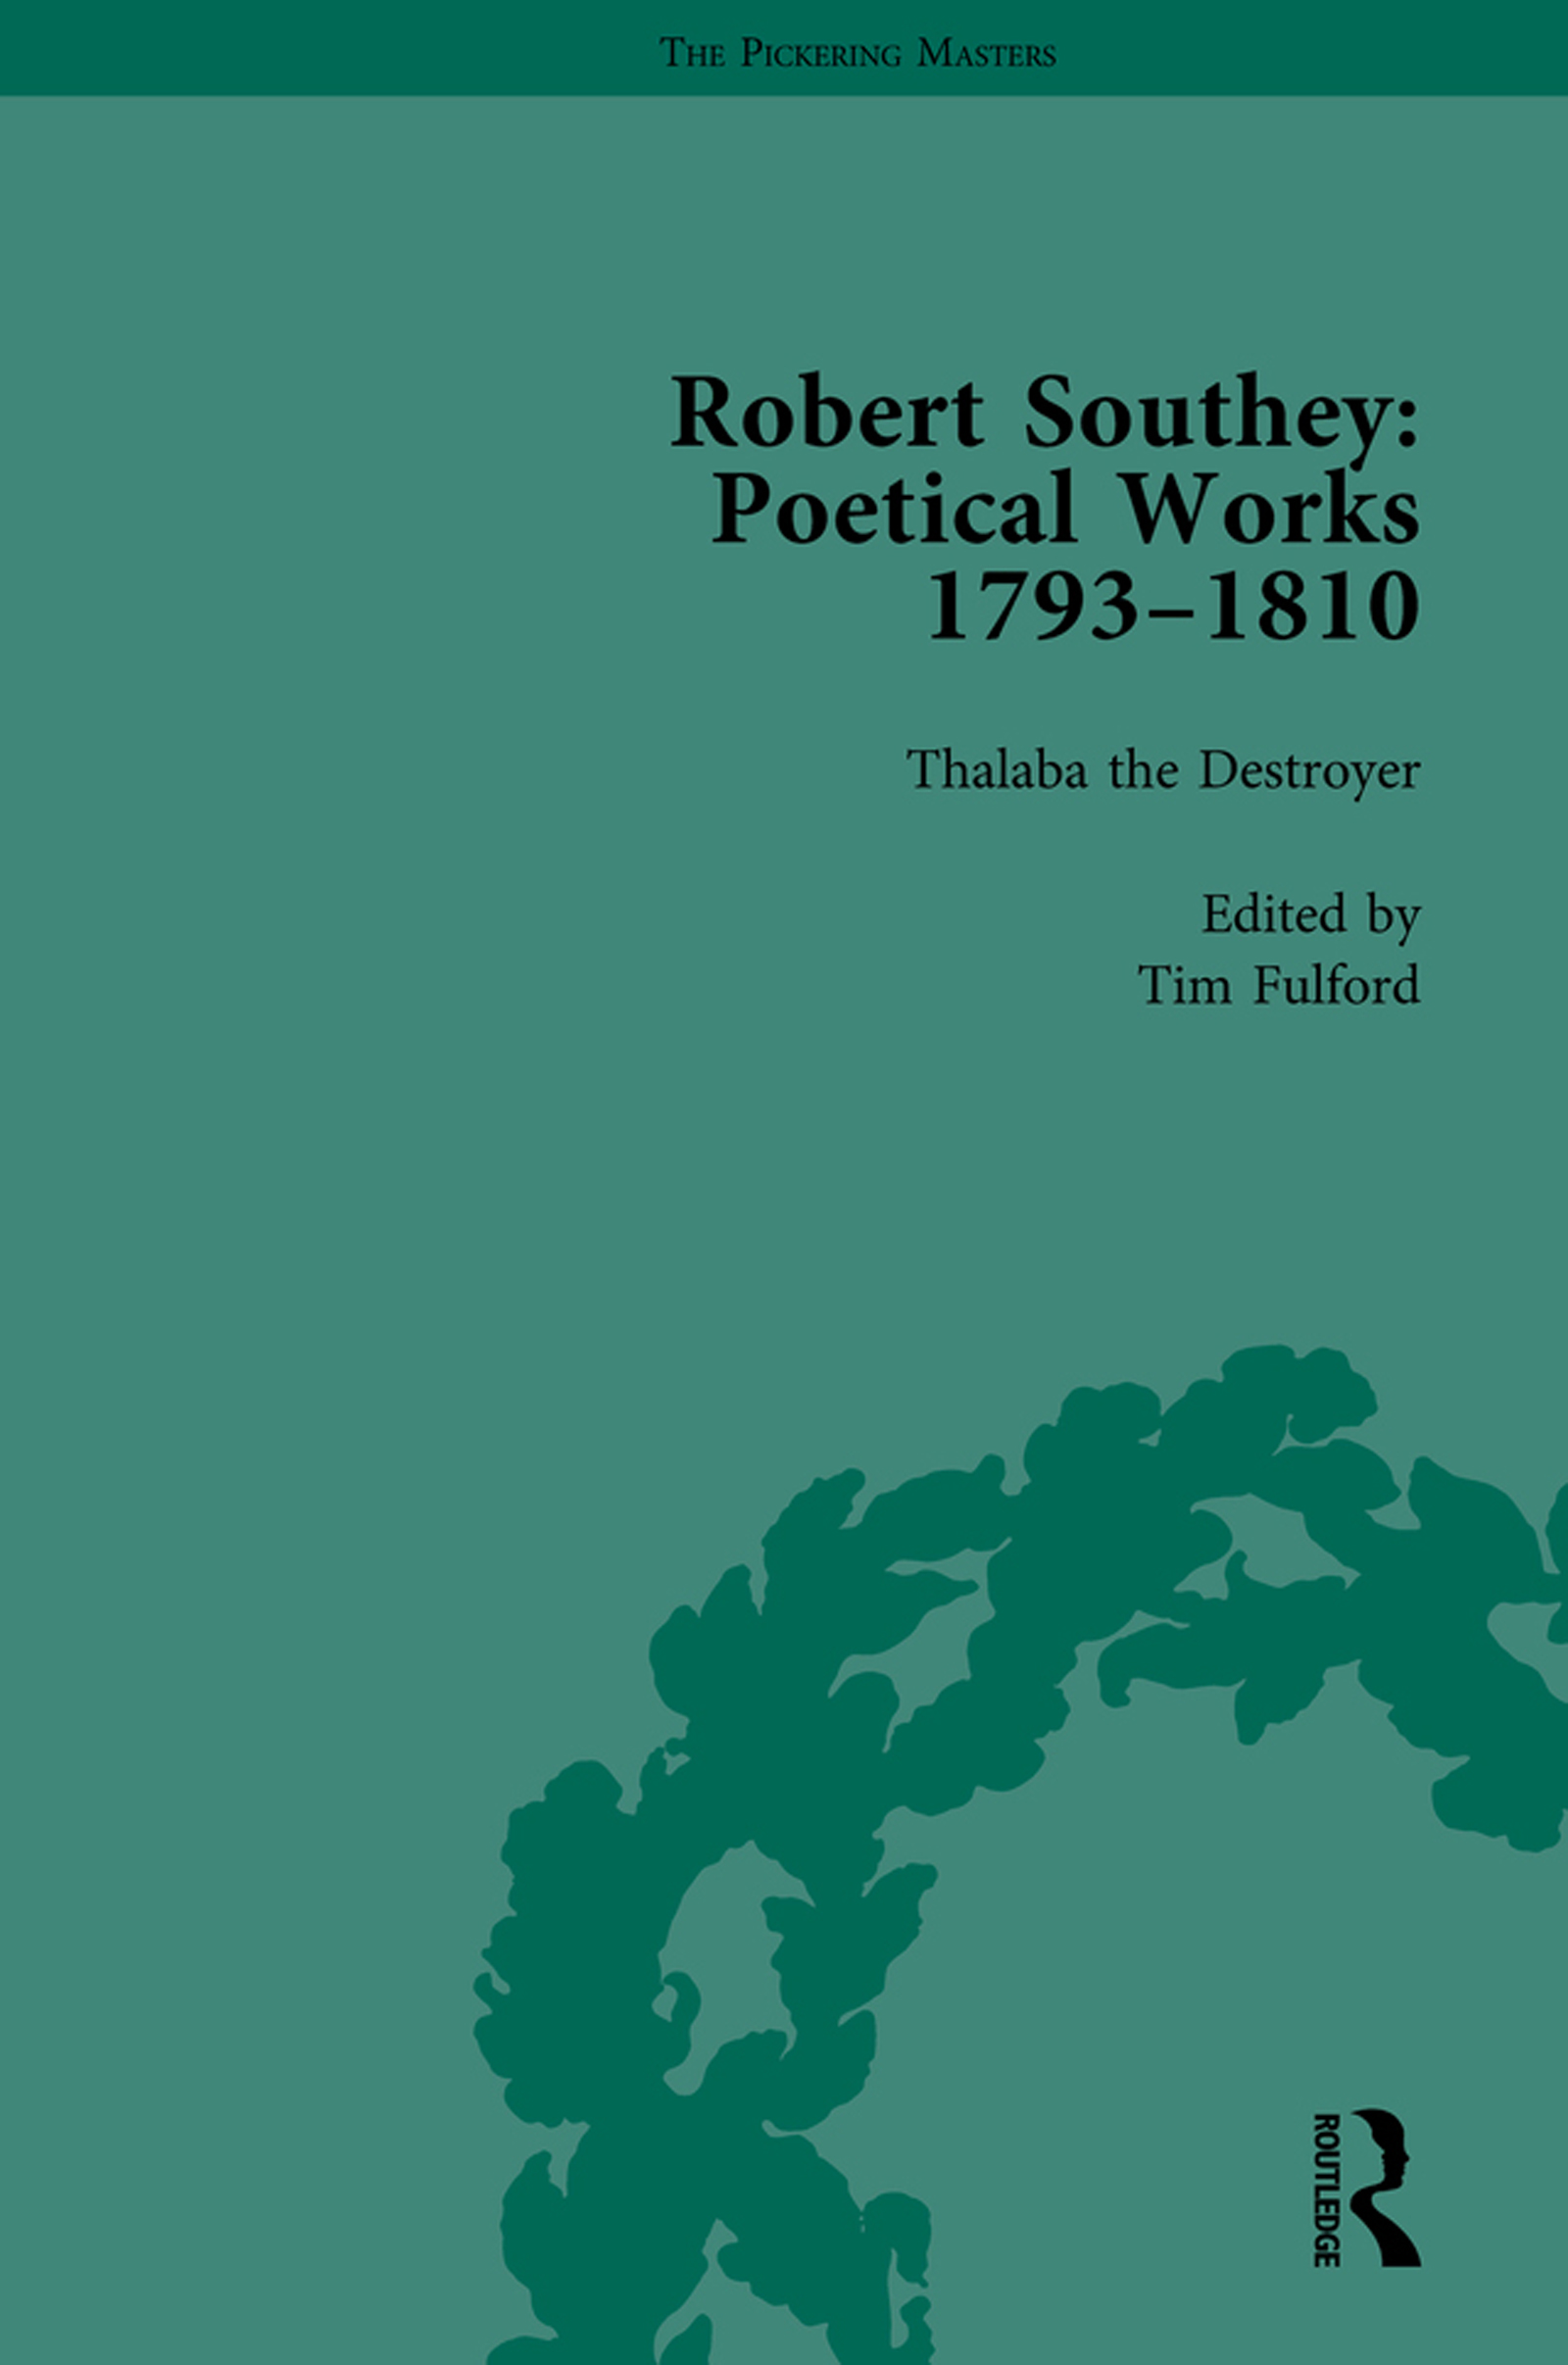 Robert Southey: Poetical Works 1793–1810 Vol 3